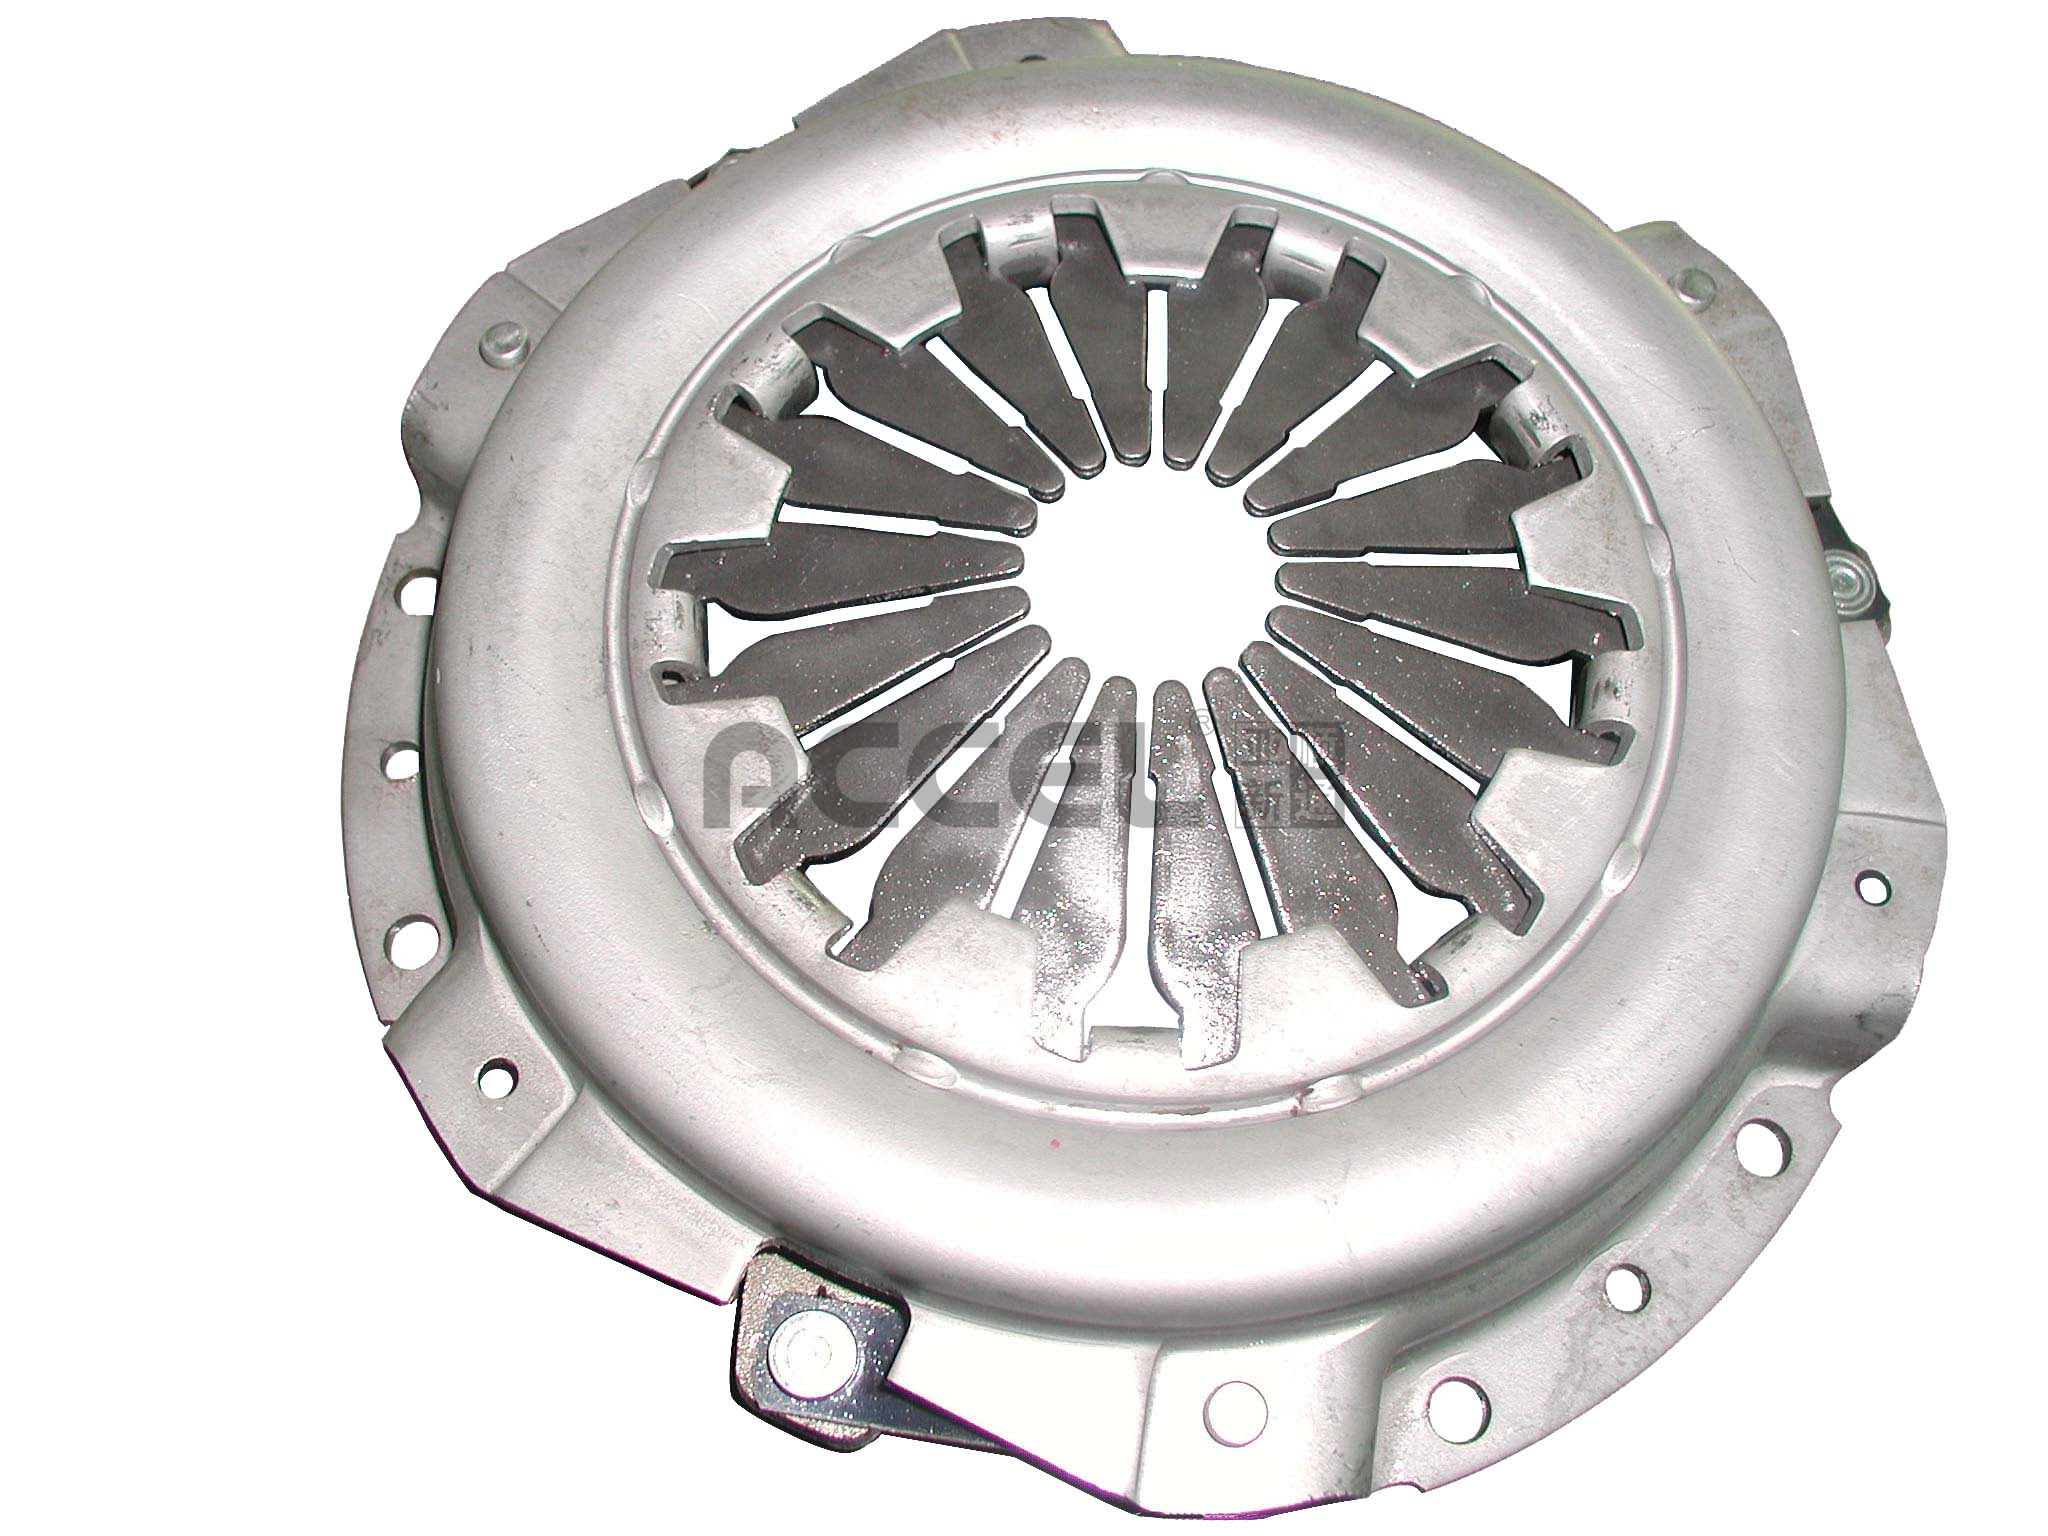 Clutch Cover/OE:NULL/181*127*210/CPG-002/PEUGEOT/LY112